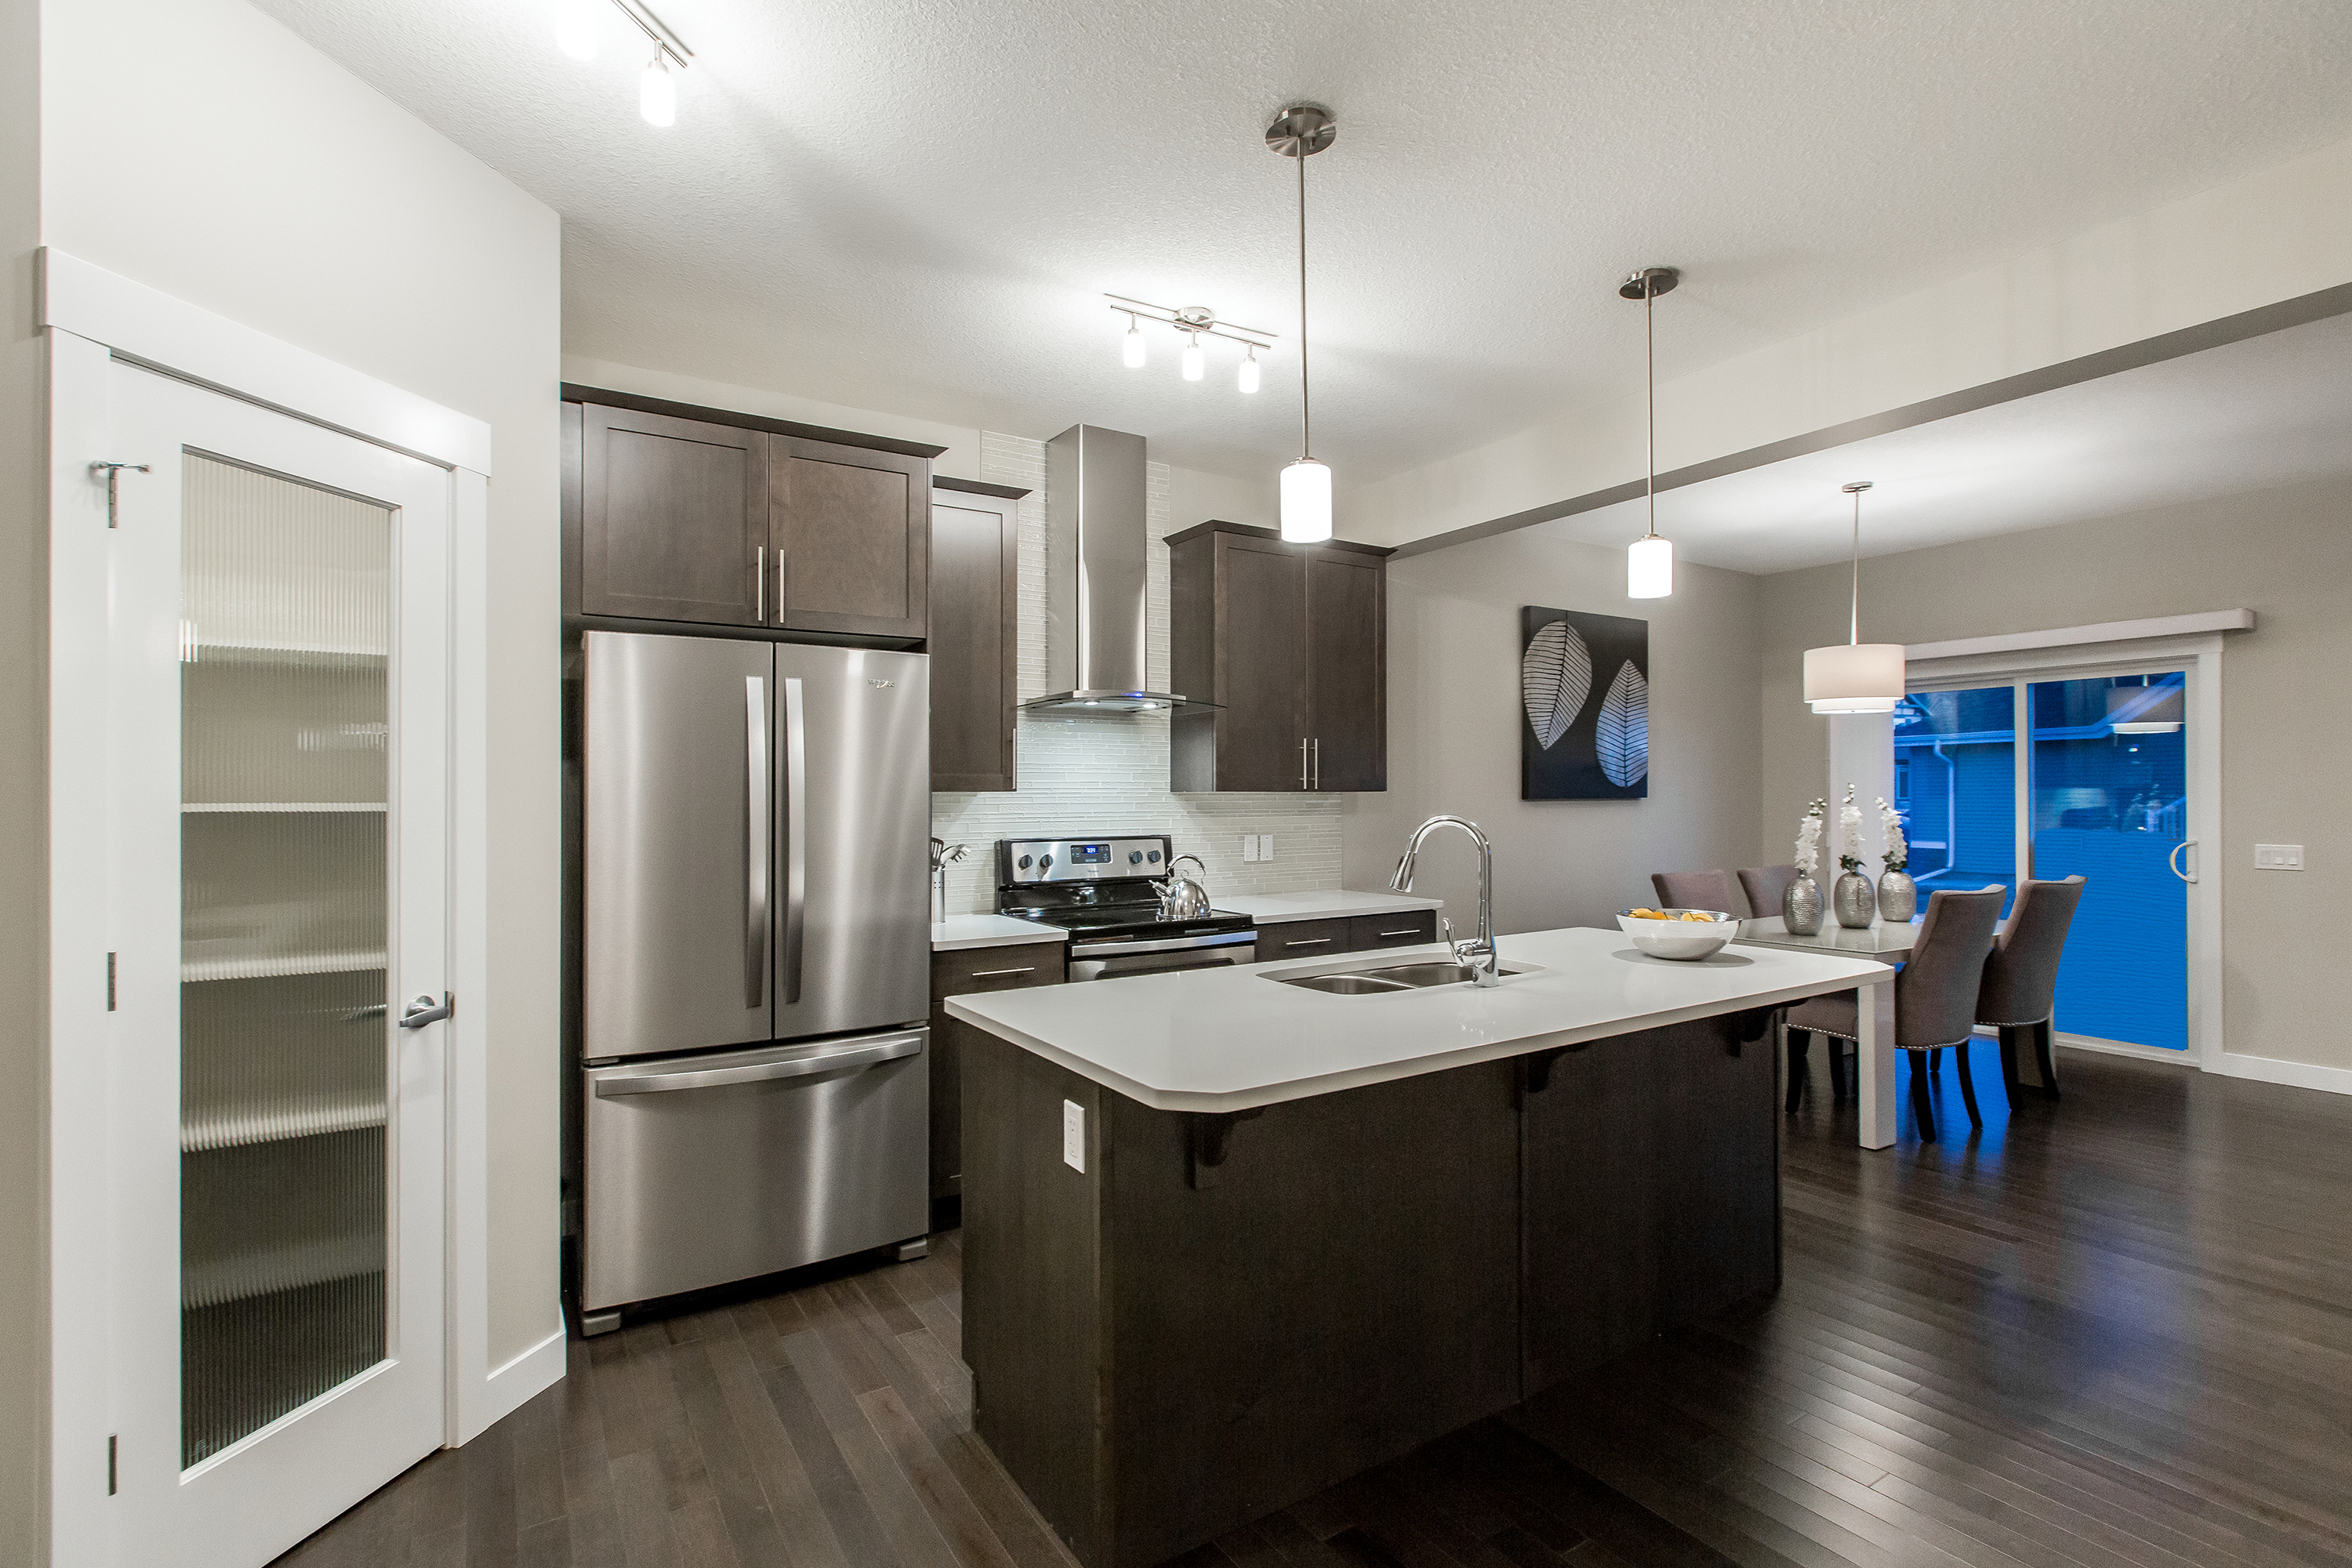 Kitchen of new home in Edmonton by City homes Master Builder